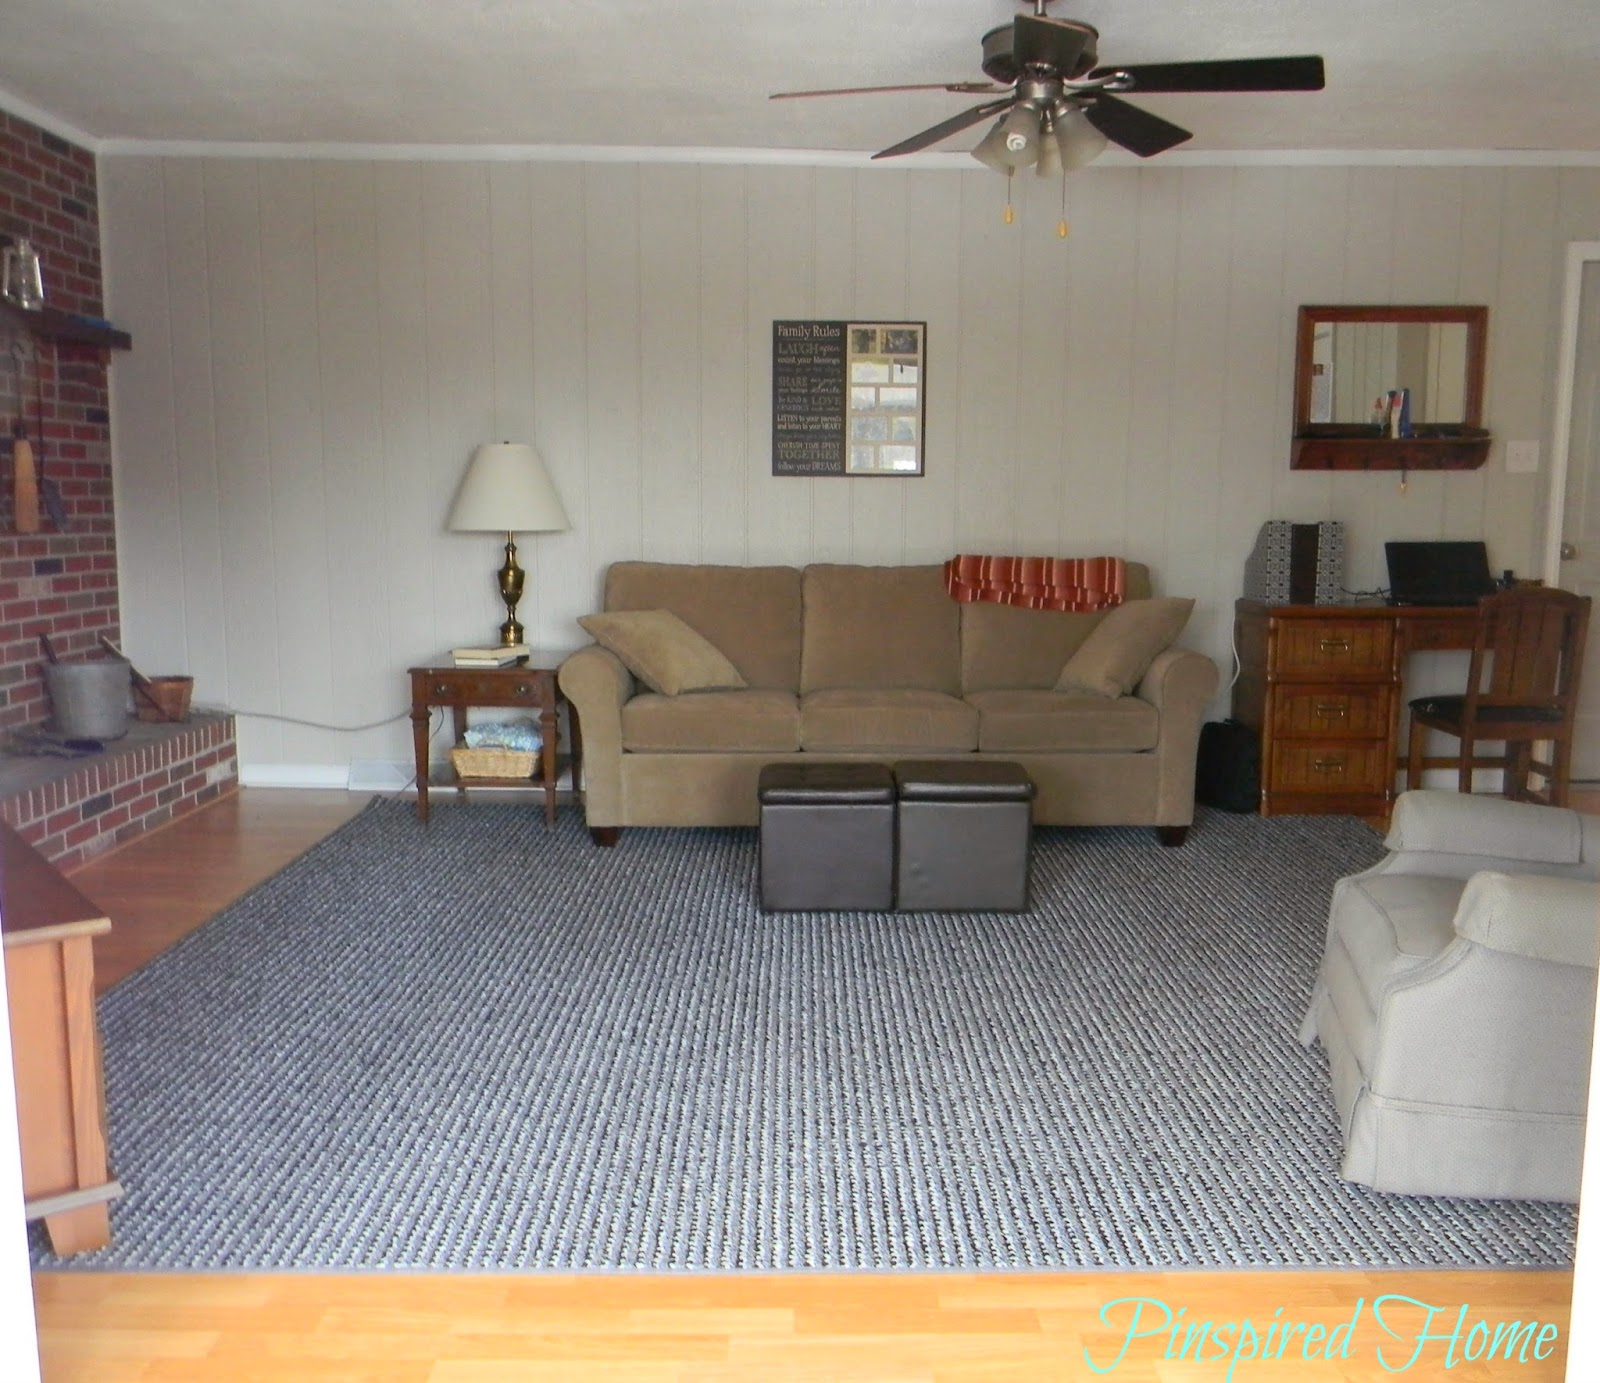 Did We Choose The Right Size I Needn T Have Worried Re So Hy With Our Choice Rug Really Brings Such A Cozy Warmth To E